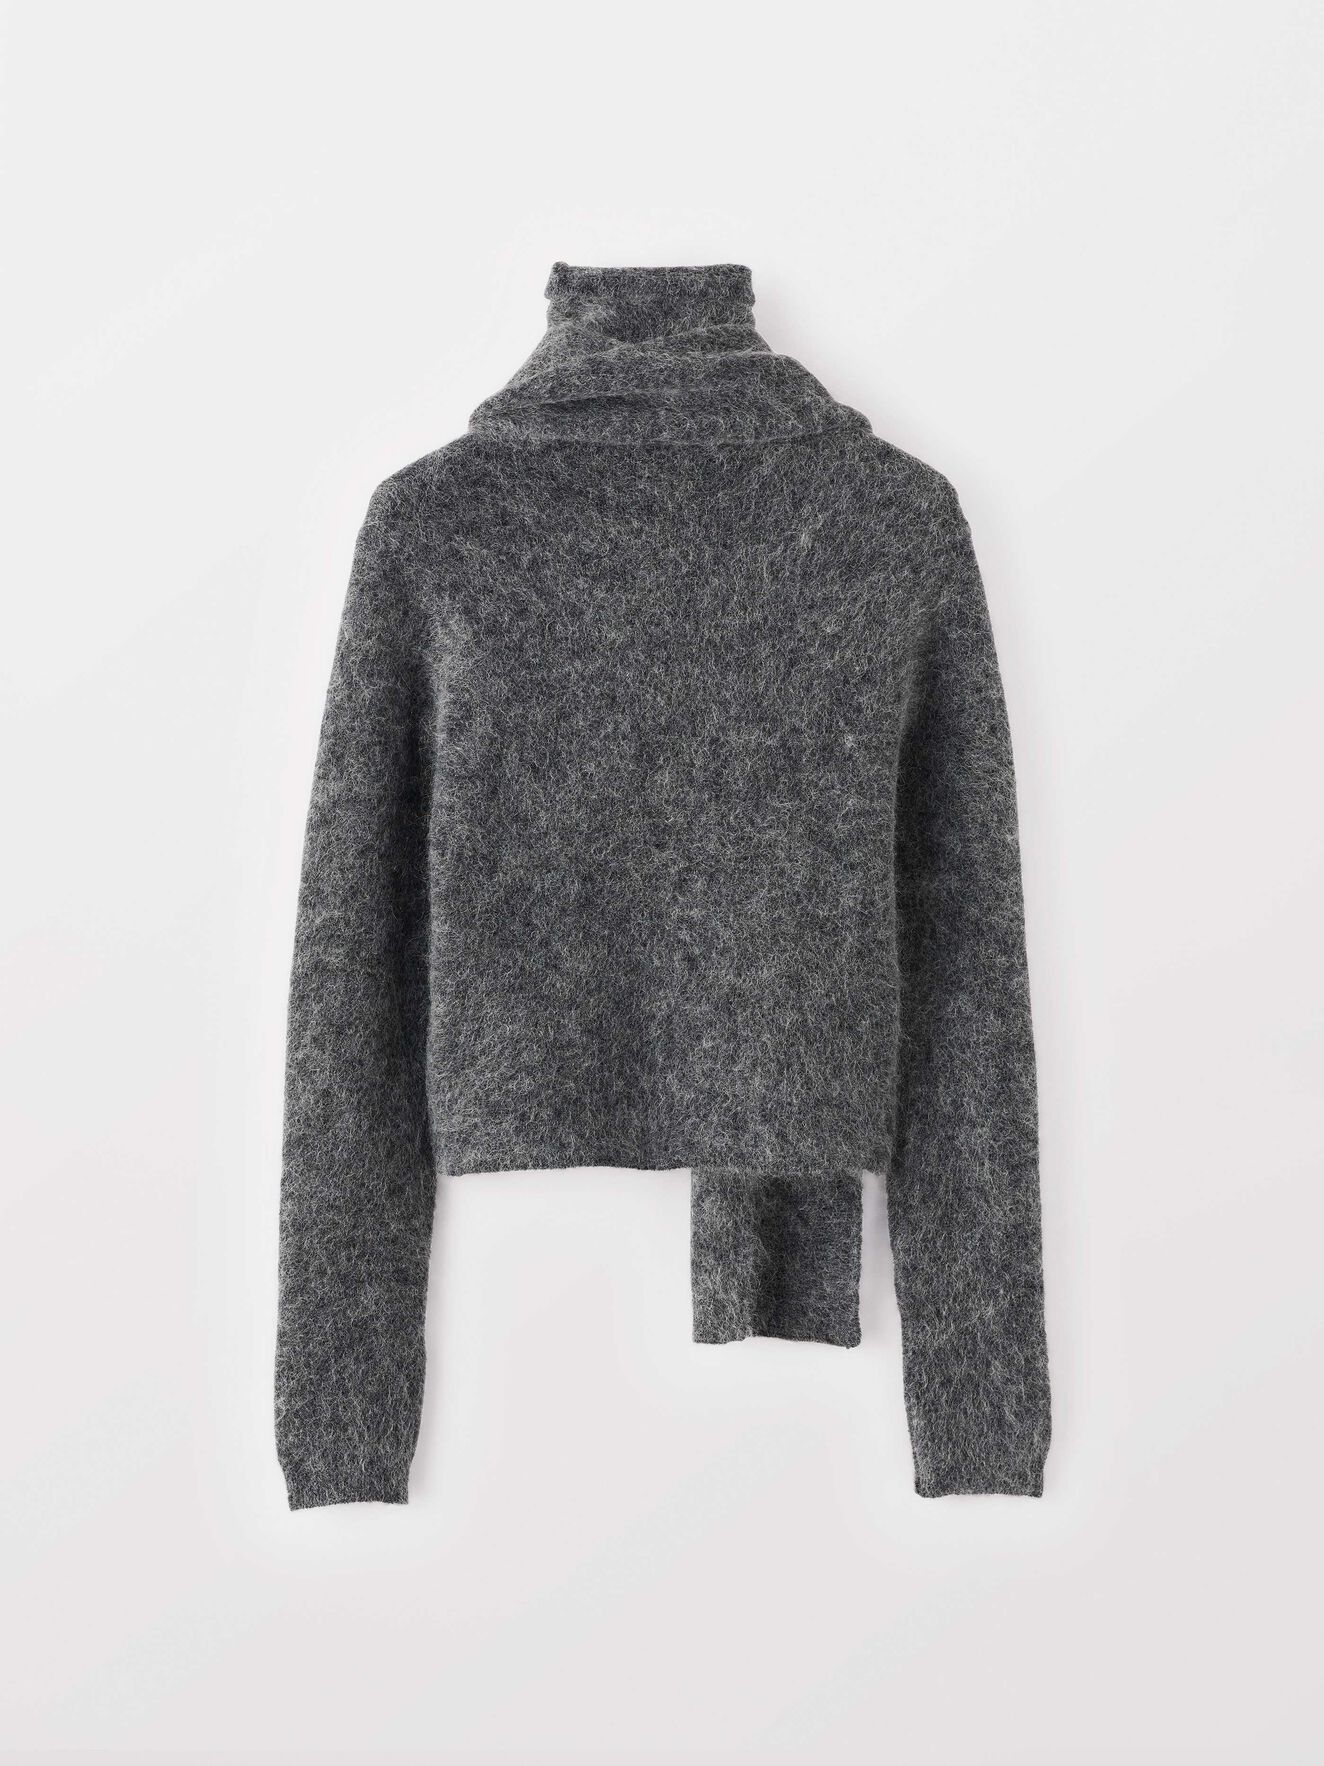 Alsafi Pullover in Iron Grey from Tiger of Sweden